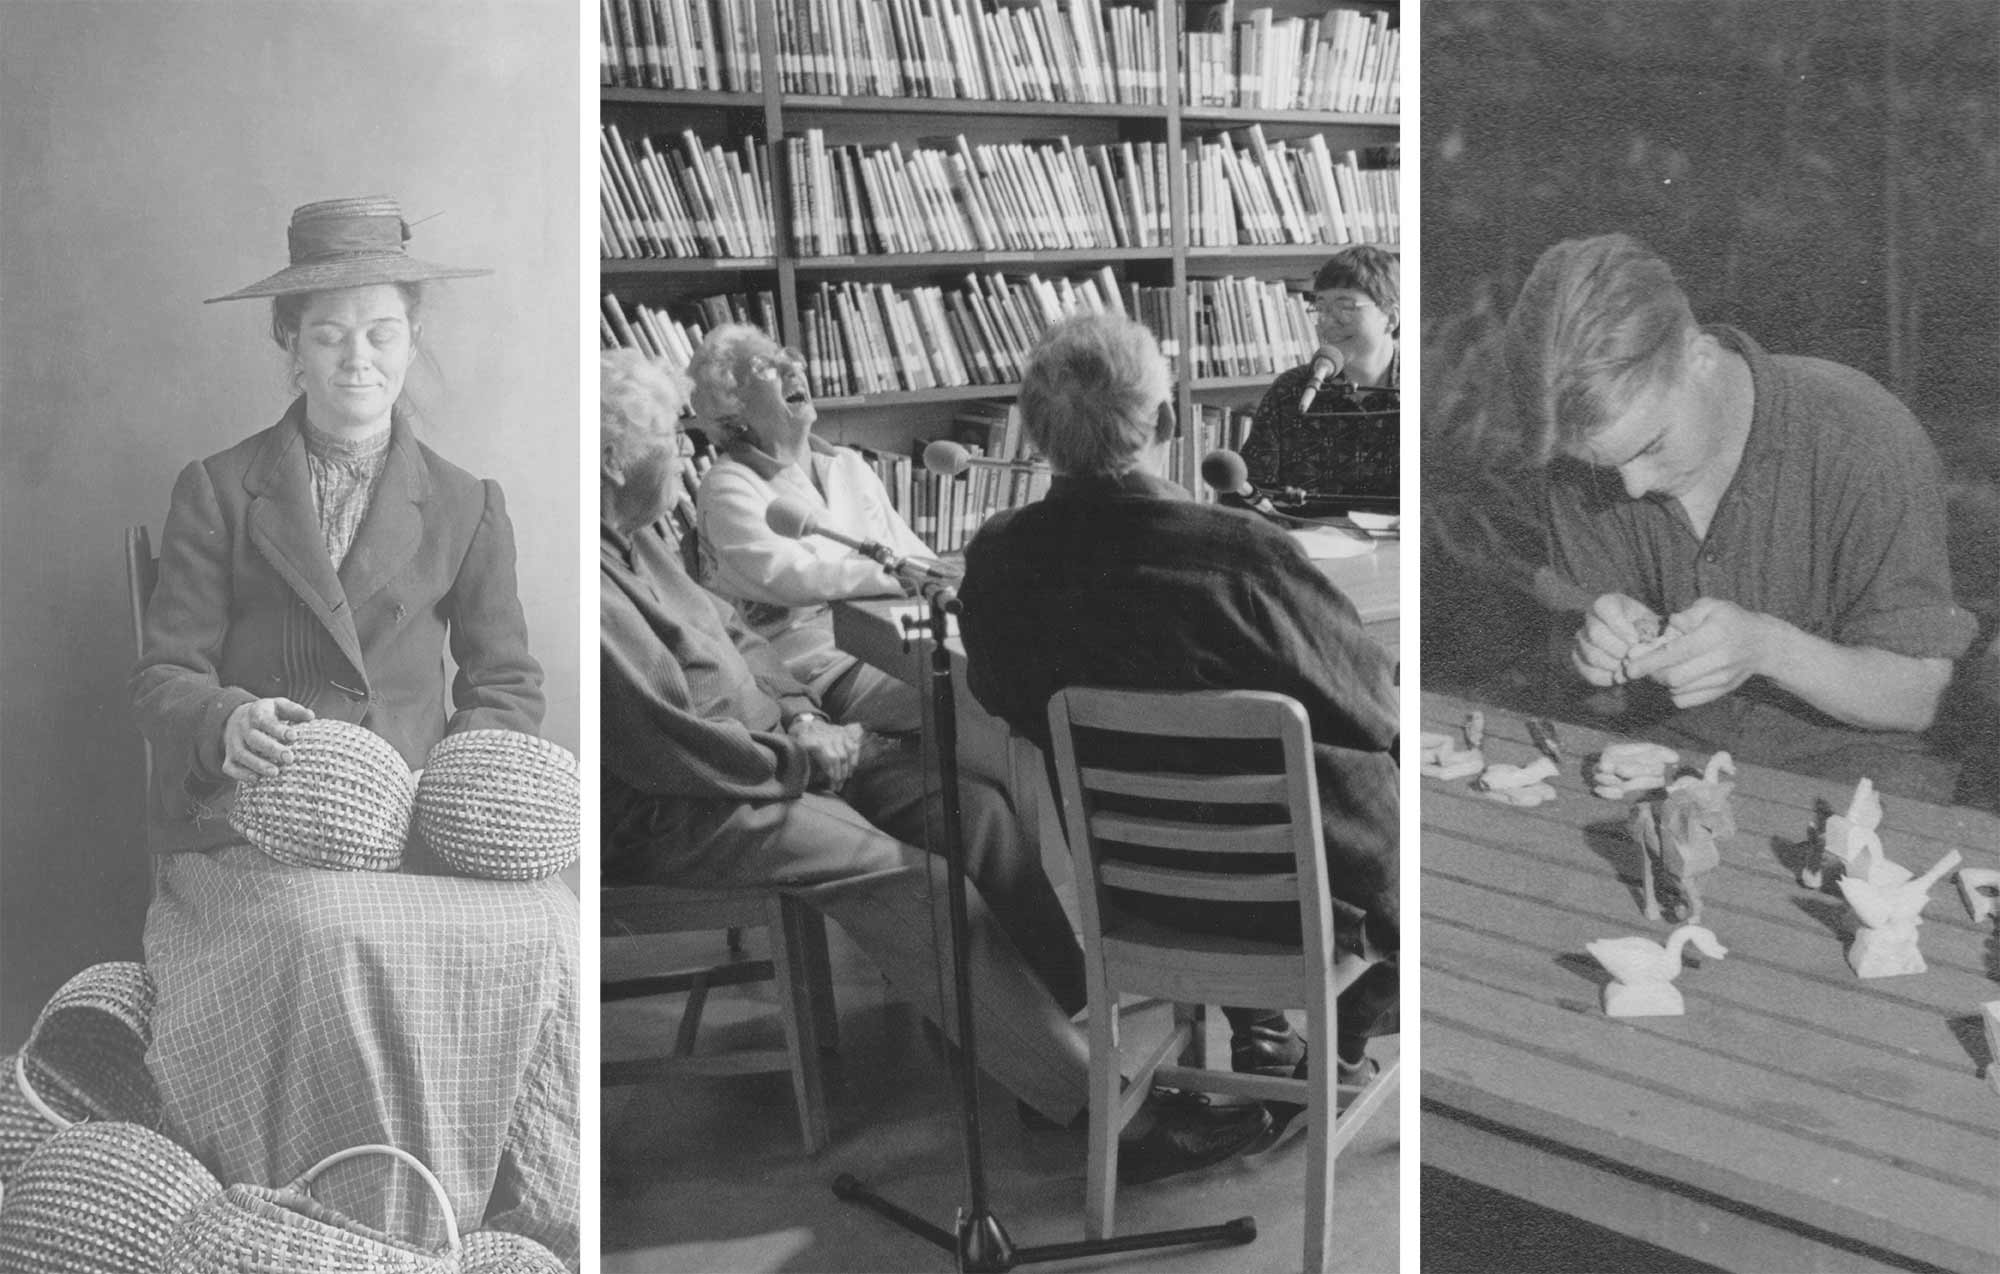 three black and white photos side-by-side including old photos of crafters with baskets, carving wood, conversing and laughing